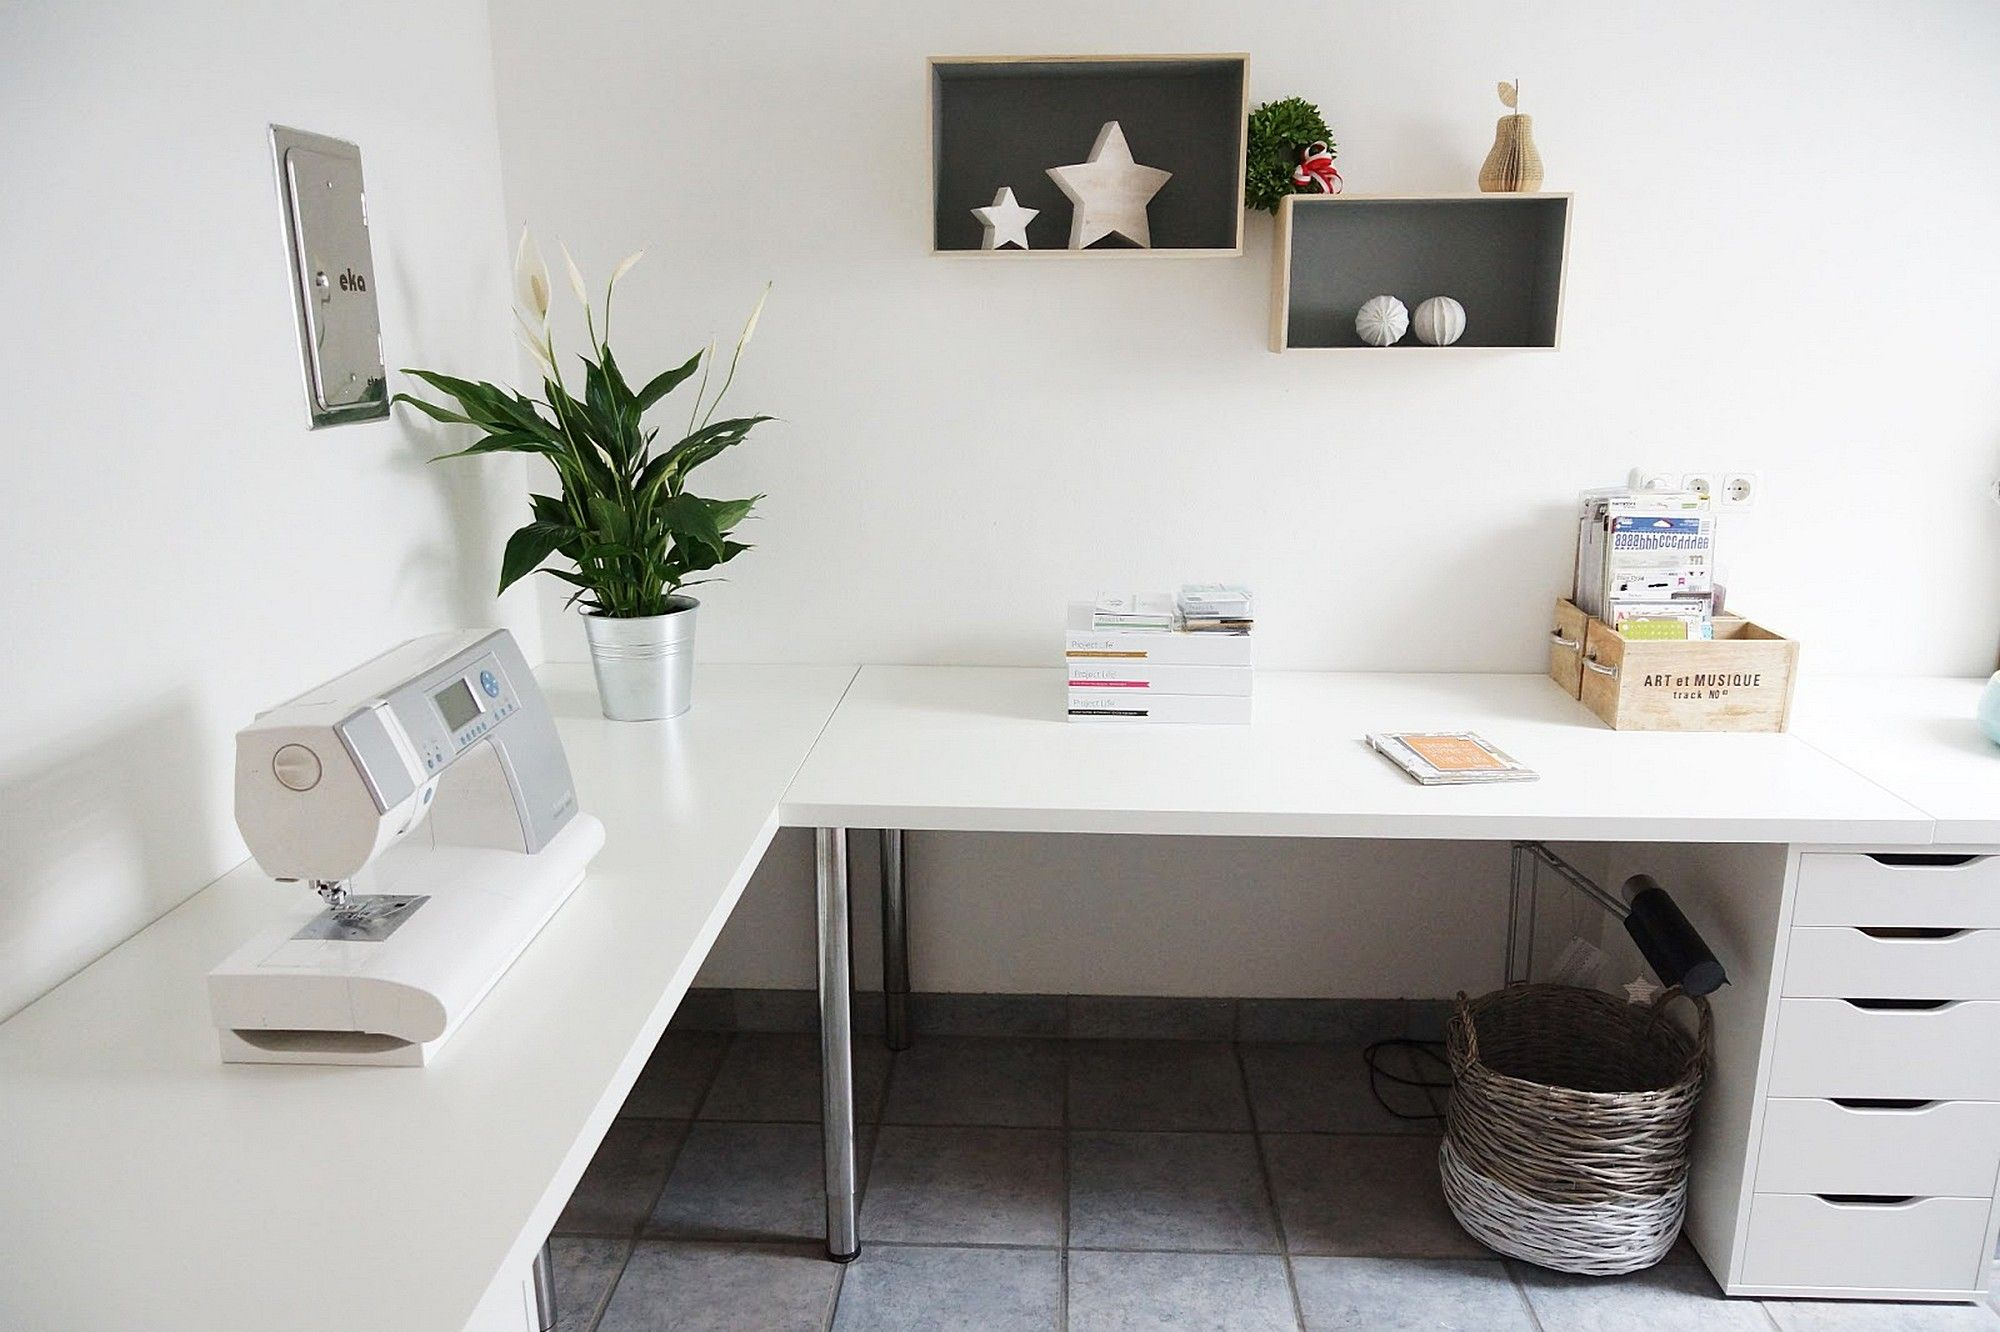 15 Stunning Diy Corner Desk Designs To Inspire You Cornerdeskplansfree